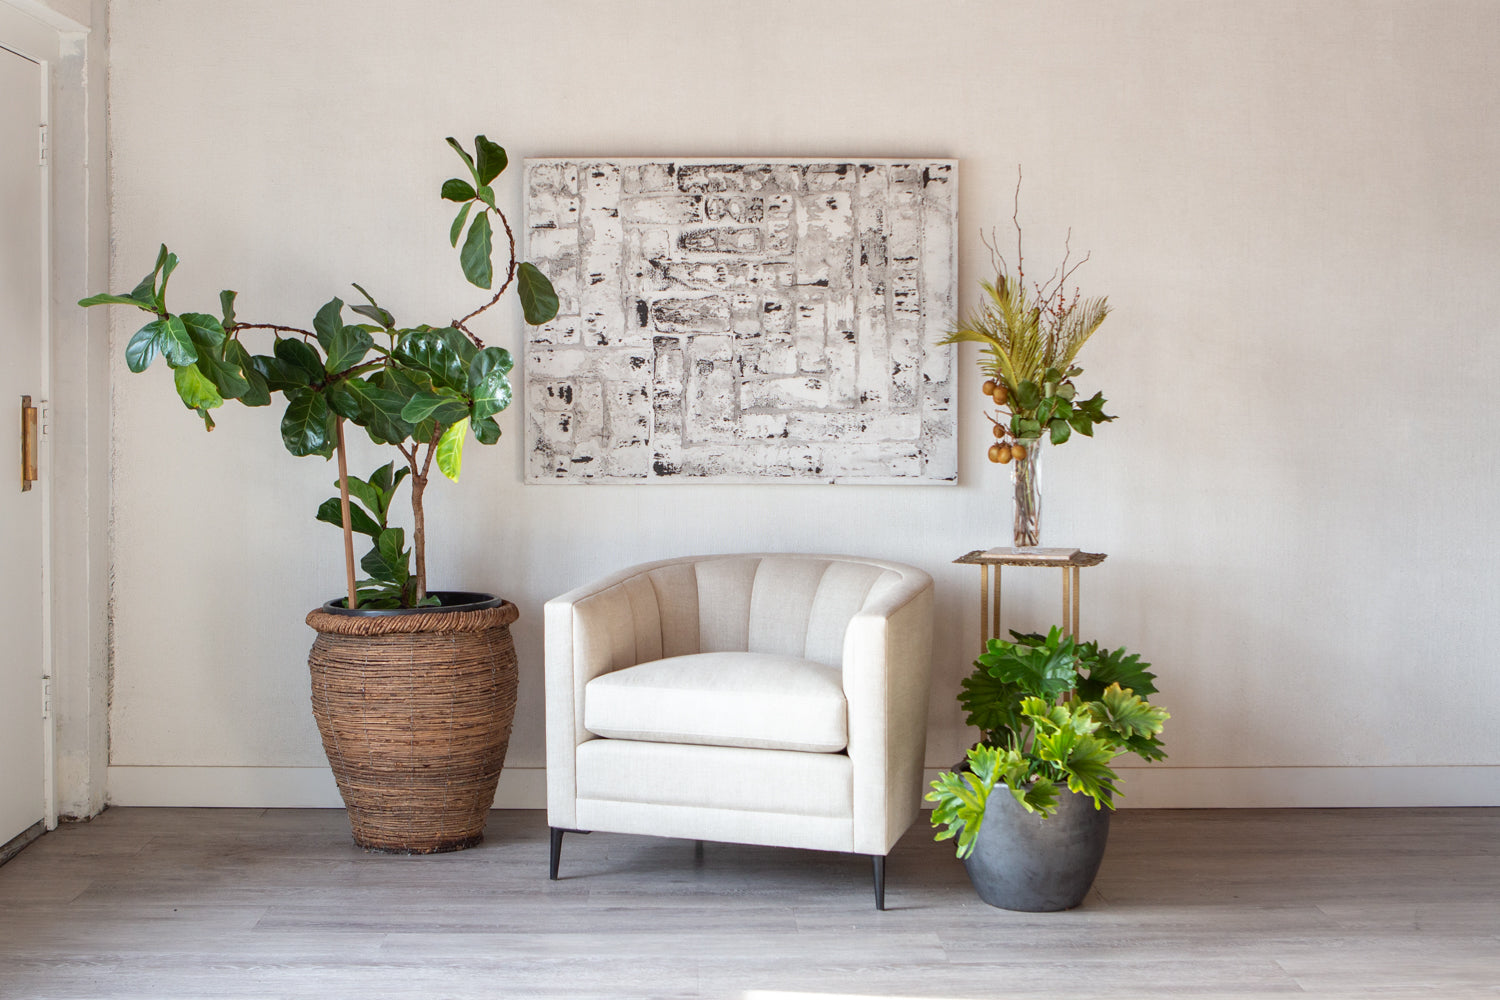 Coco Chair by ffabb home, shown in room scene, styled with plants